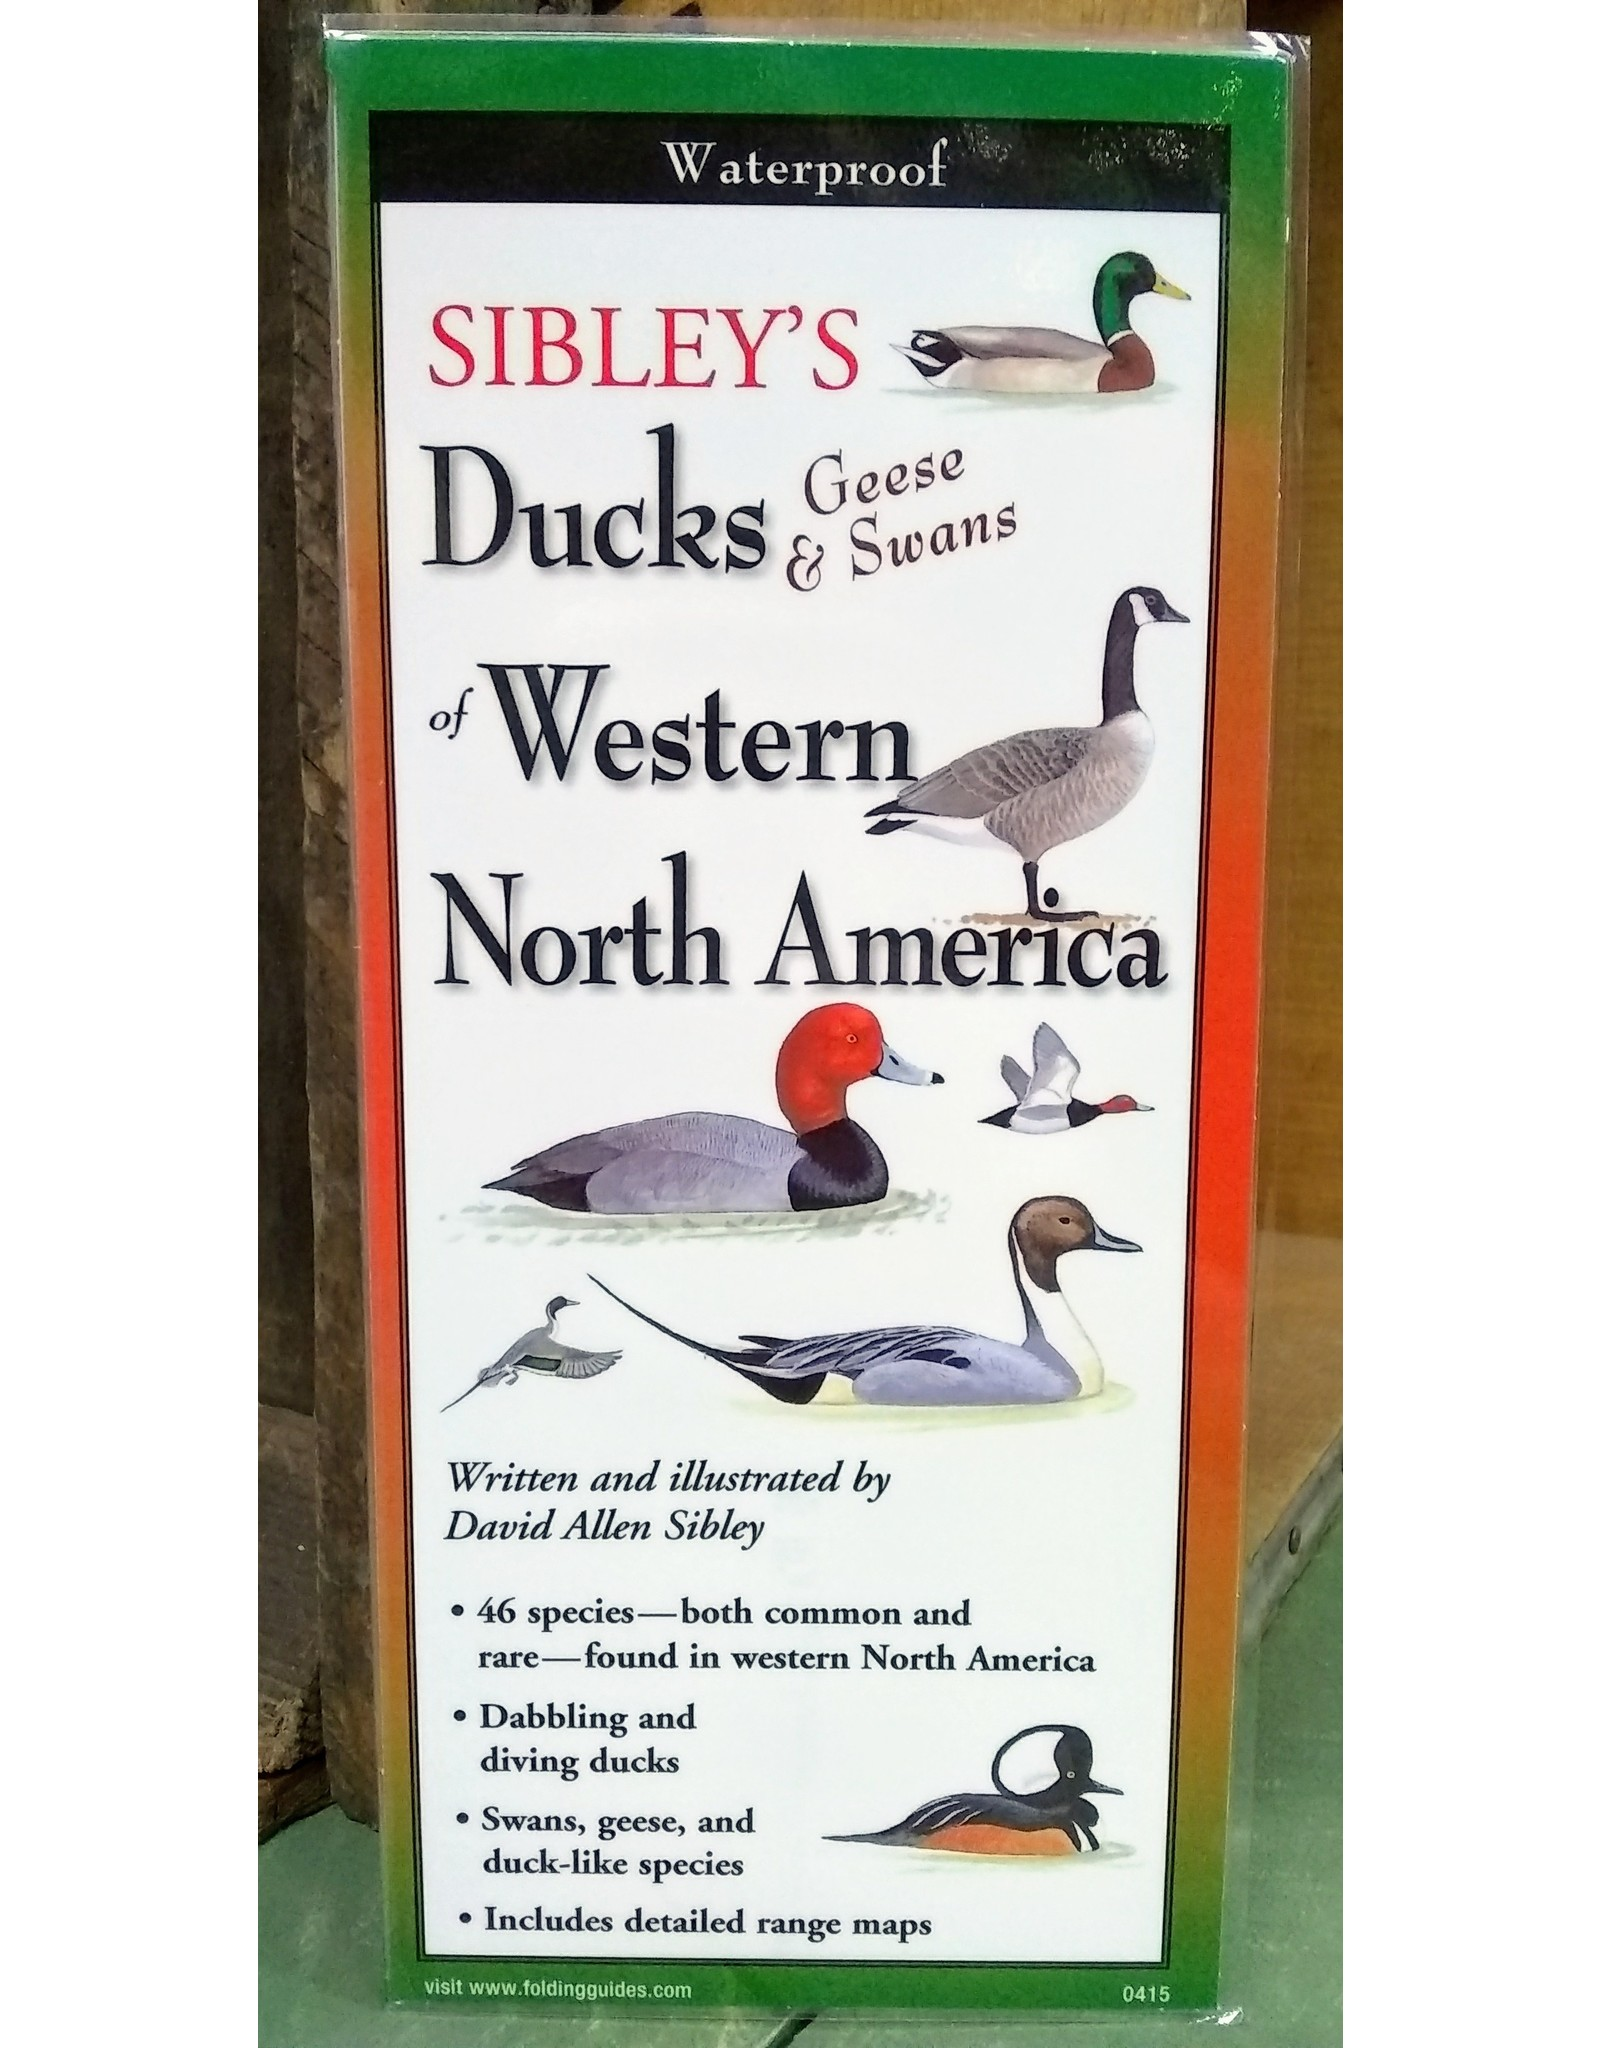 Sibley's, Ducks, Geese, & Swans of Western N. America, Quick Guide